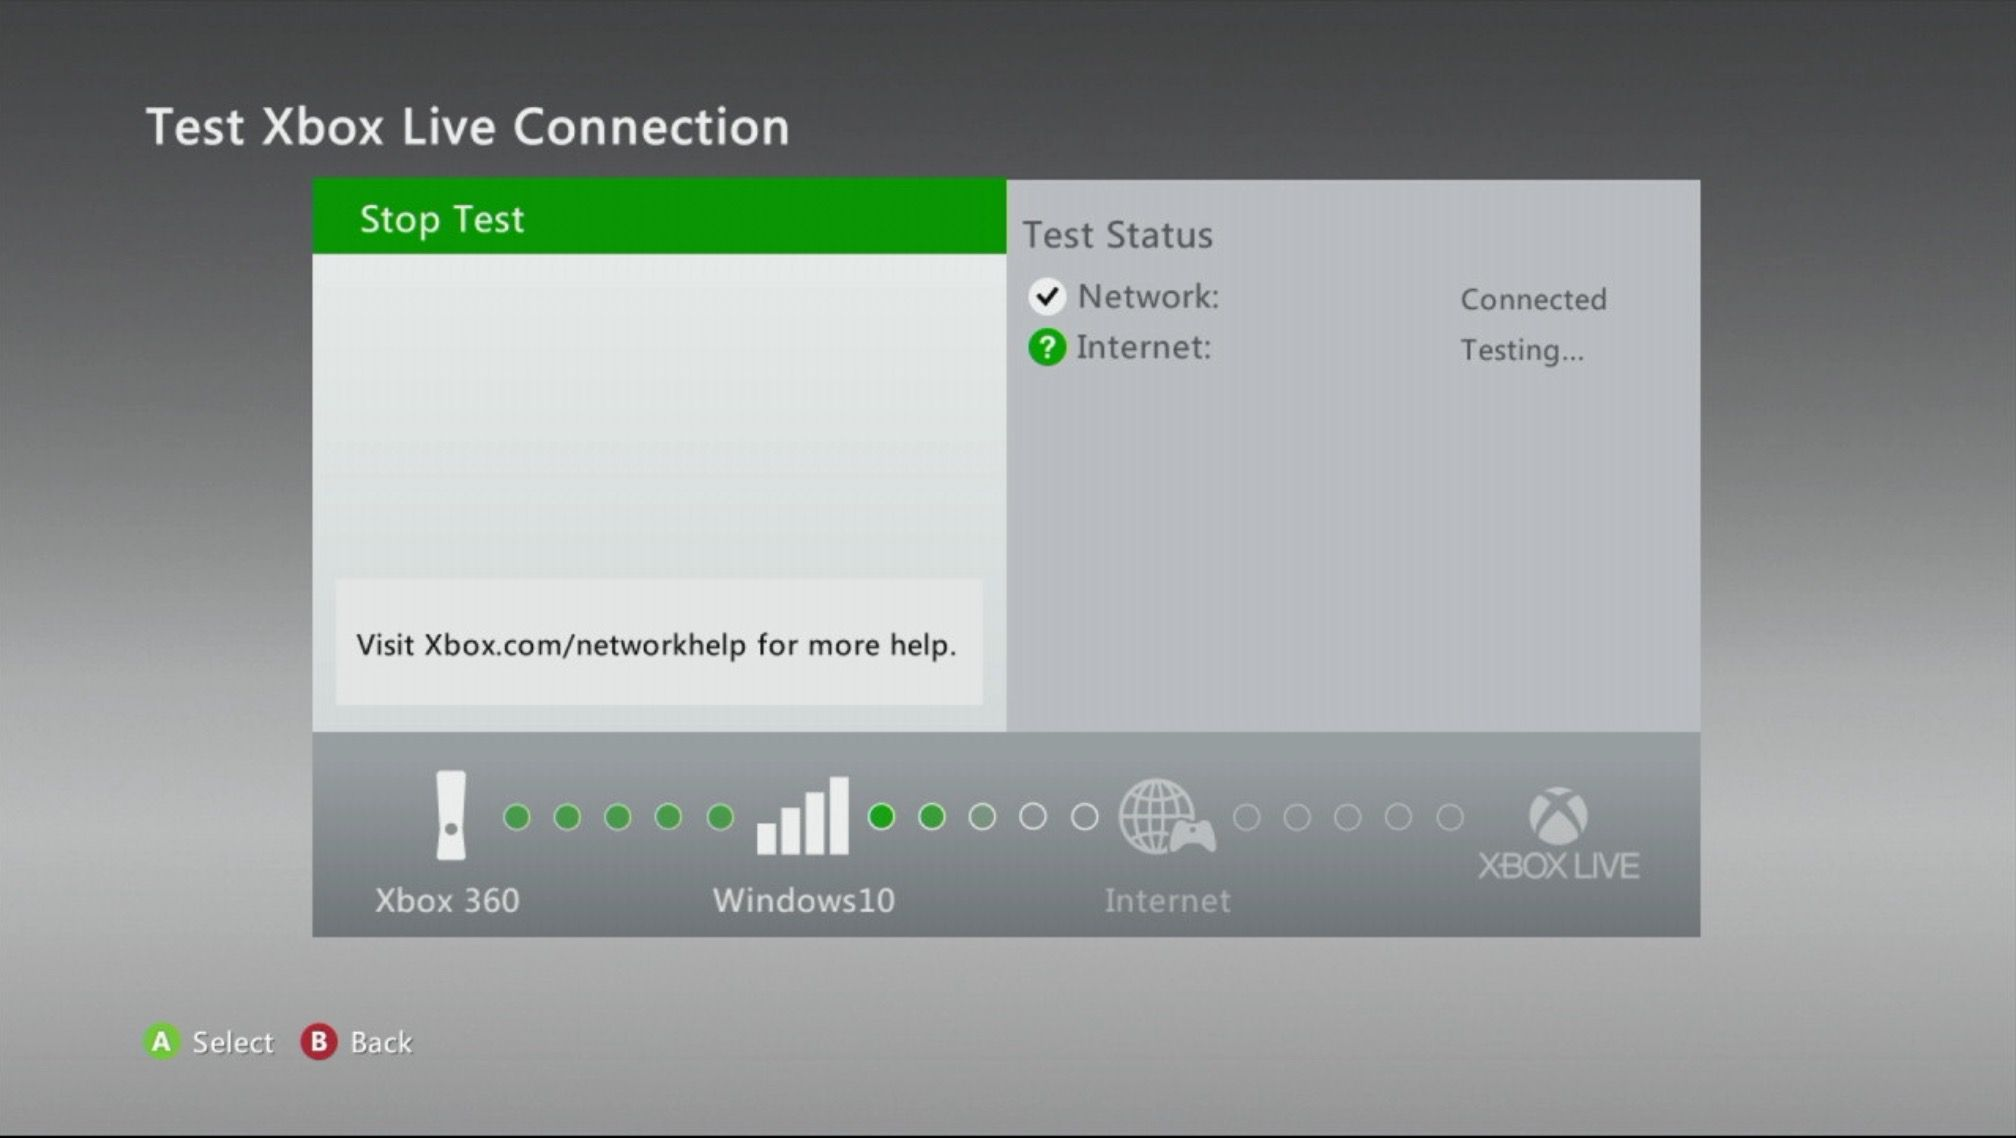 Xbox Live connection test on a 360